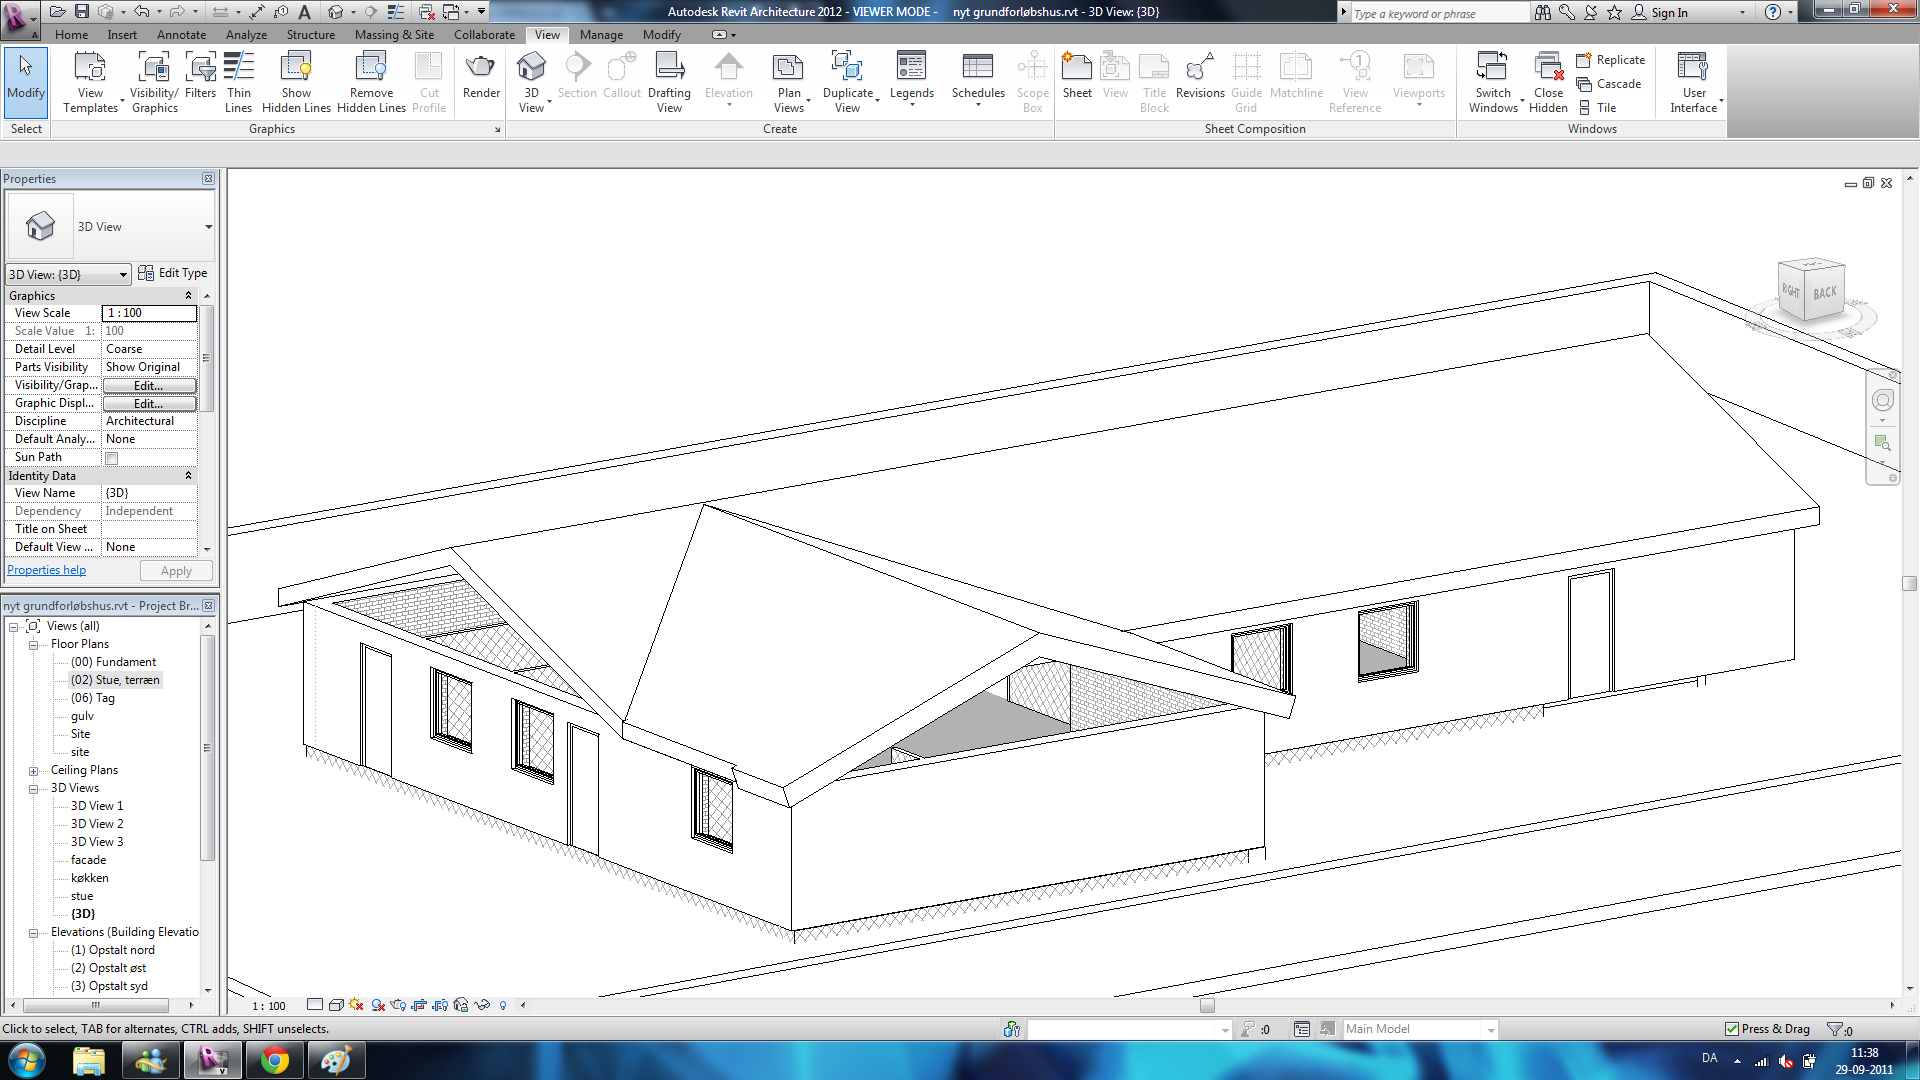 Gable Roof in Revit http://forums.autodesk.com/t5/Autodesk-Revit-Architecture/revit-roof-problem/td-p/3174174